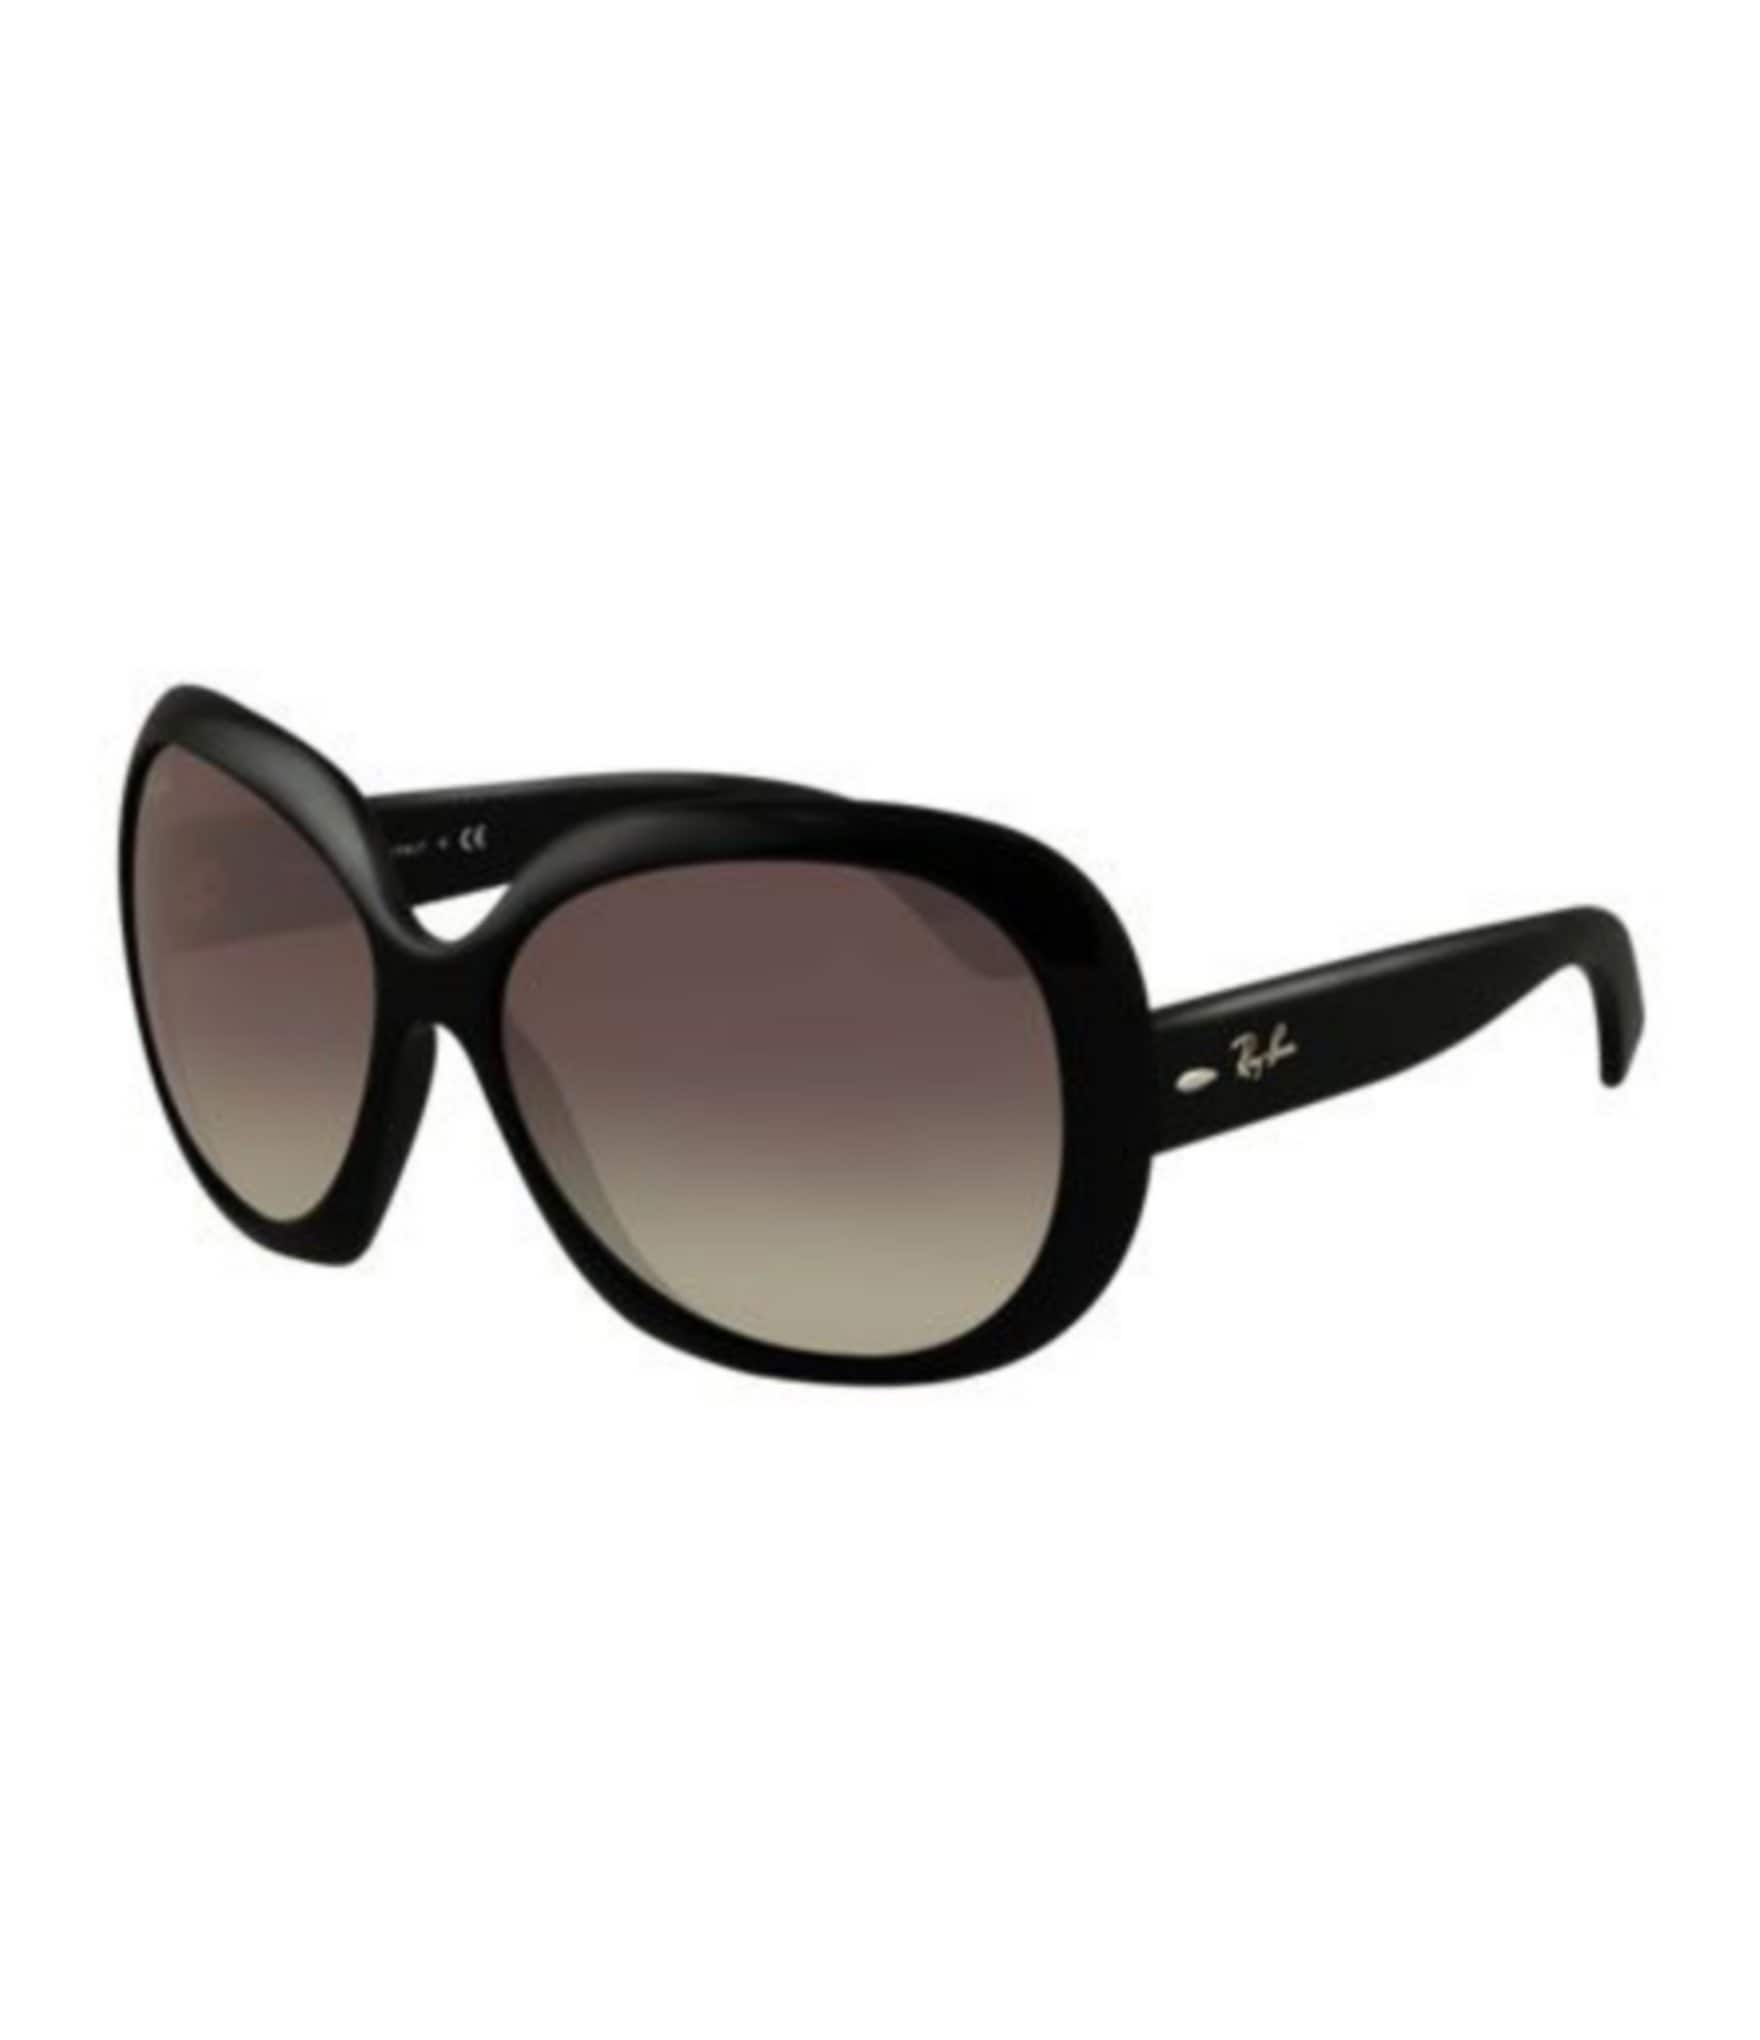 ray ban jackie ohh ii oversized sunglasses with gradient lenses dillards. Black Bedroom Furniture Sets. Home Design Ideas